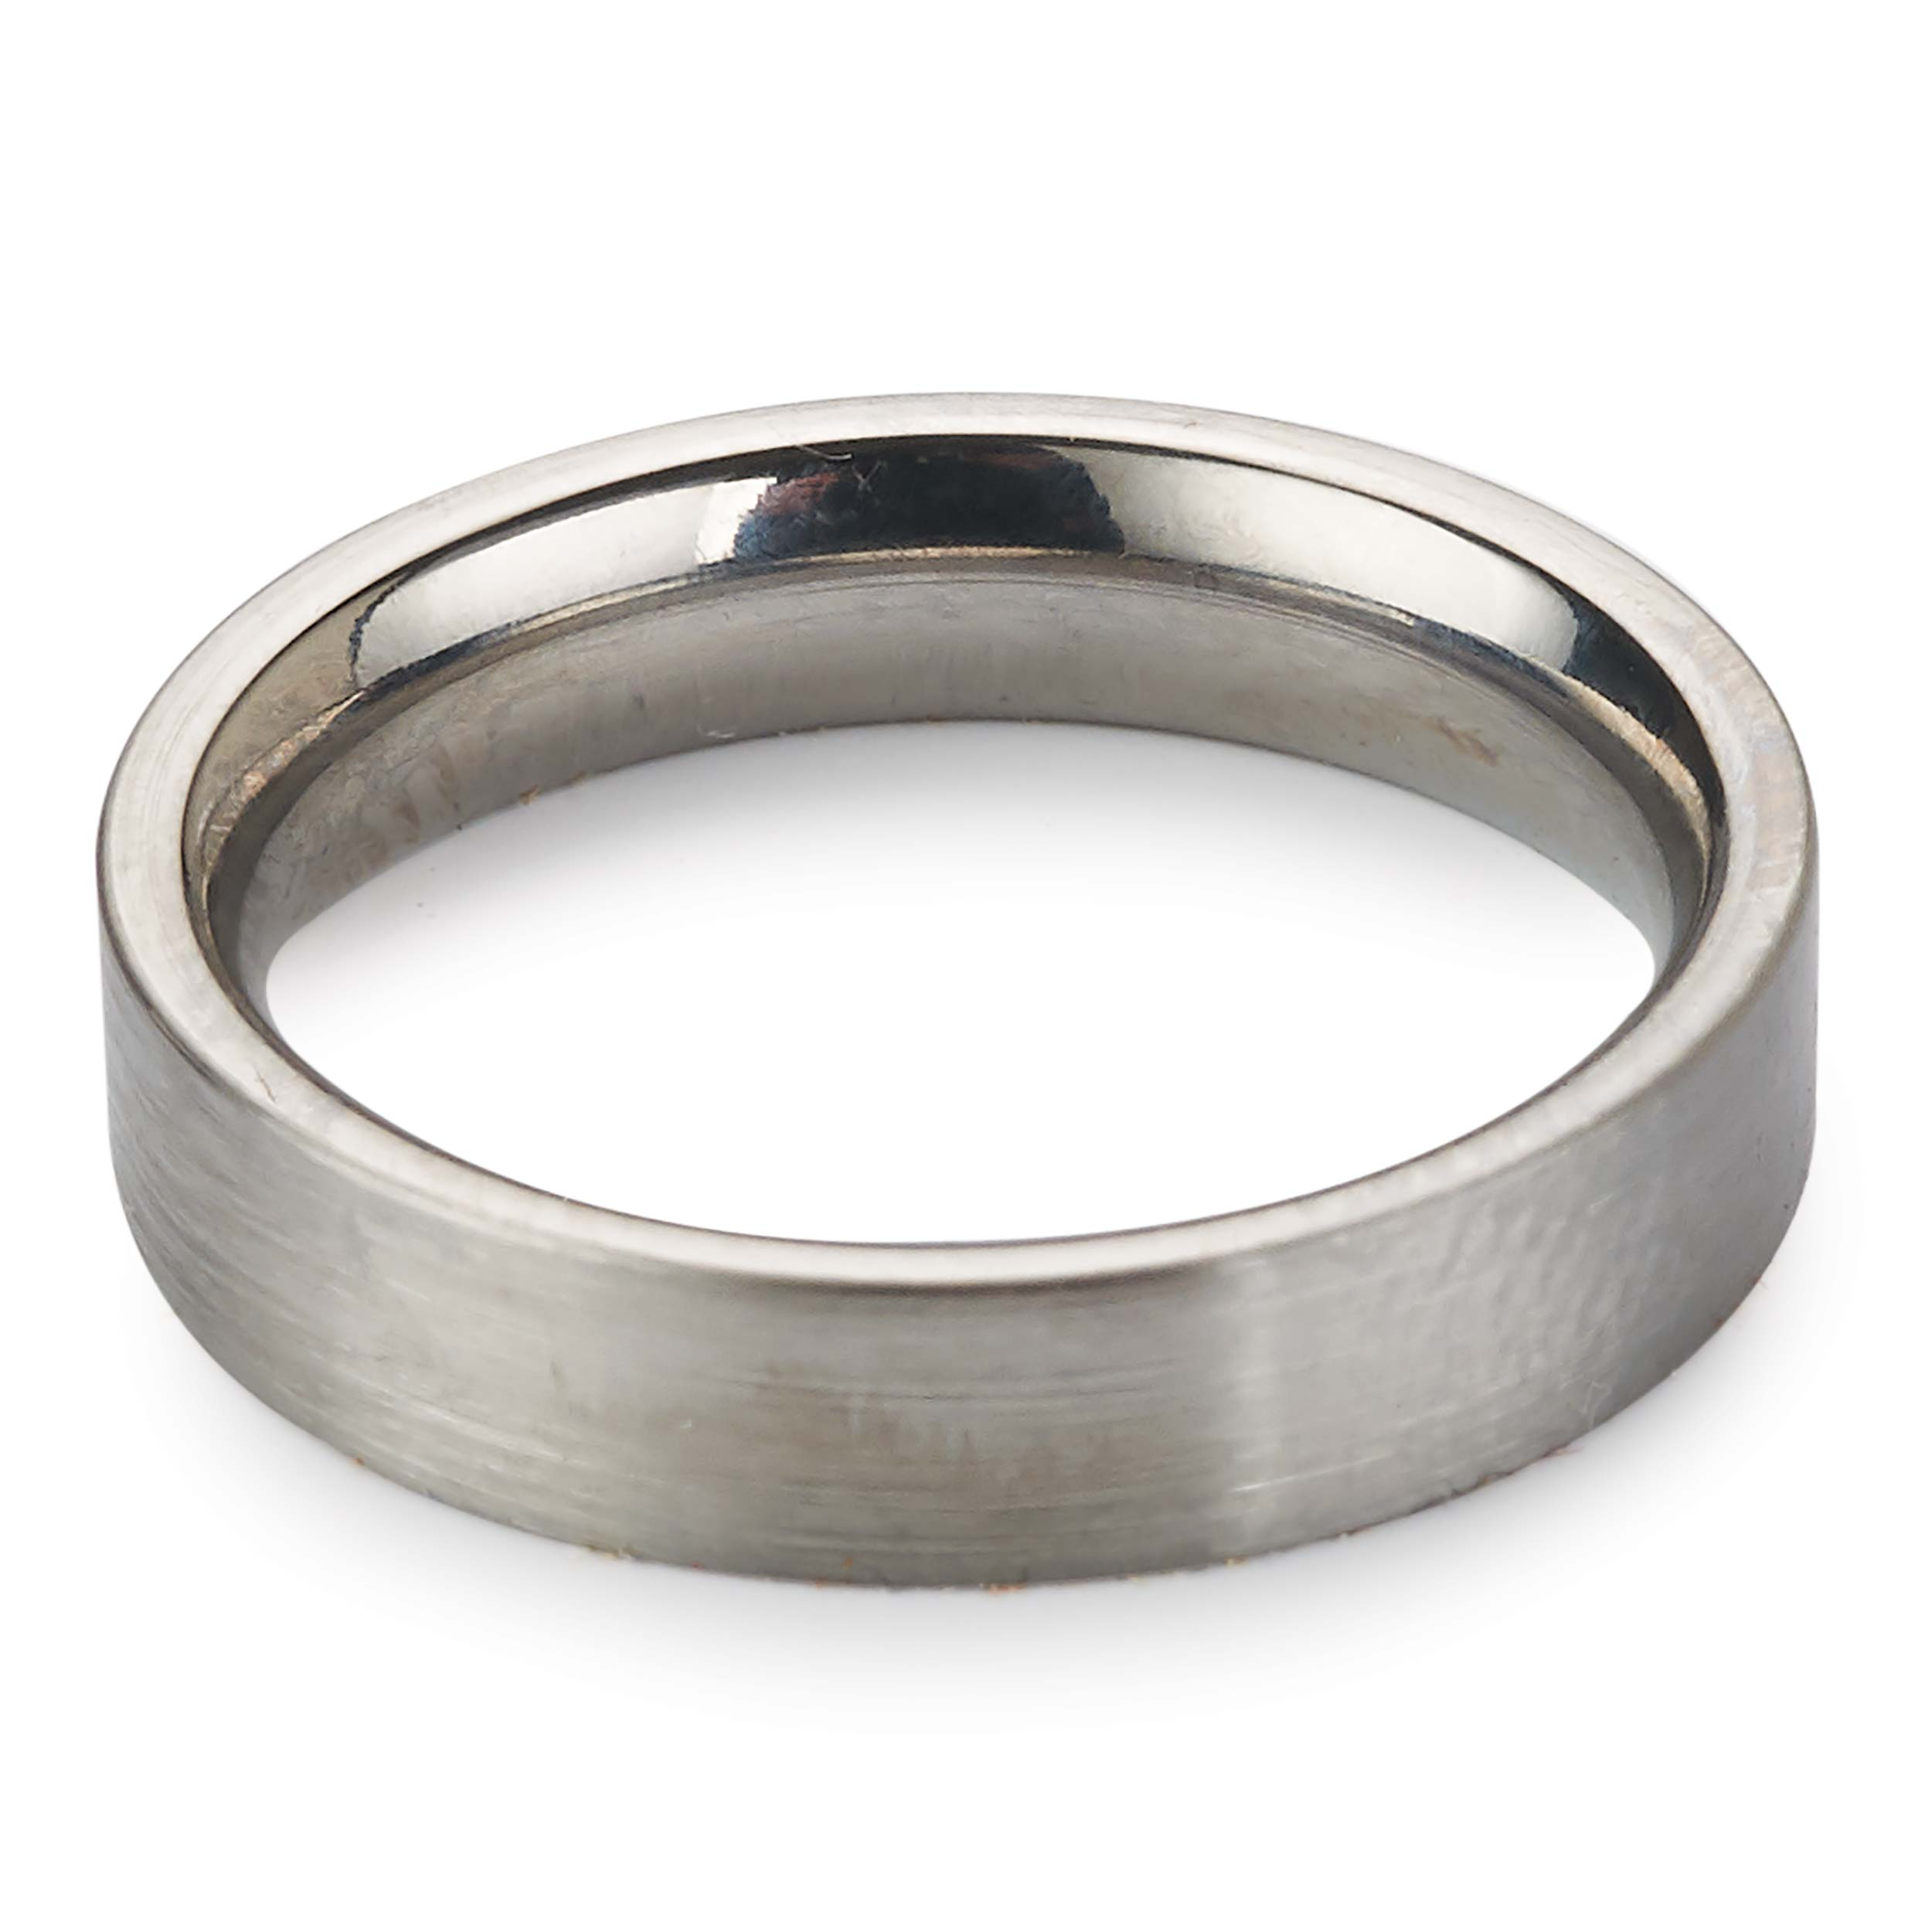 Comfort Ring Core - 64AL-4V Titanium - 4mm, Size 12